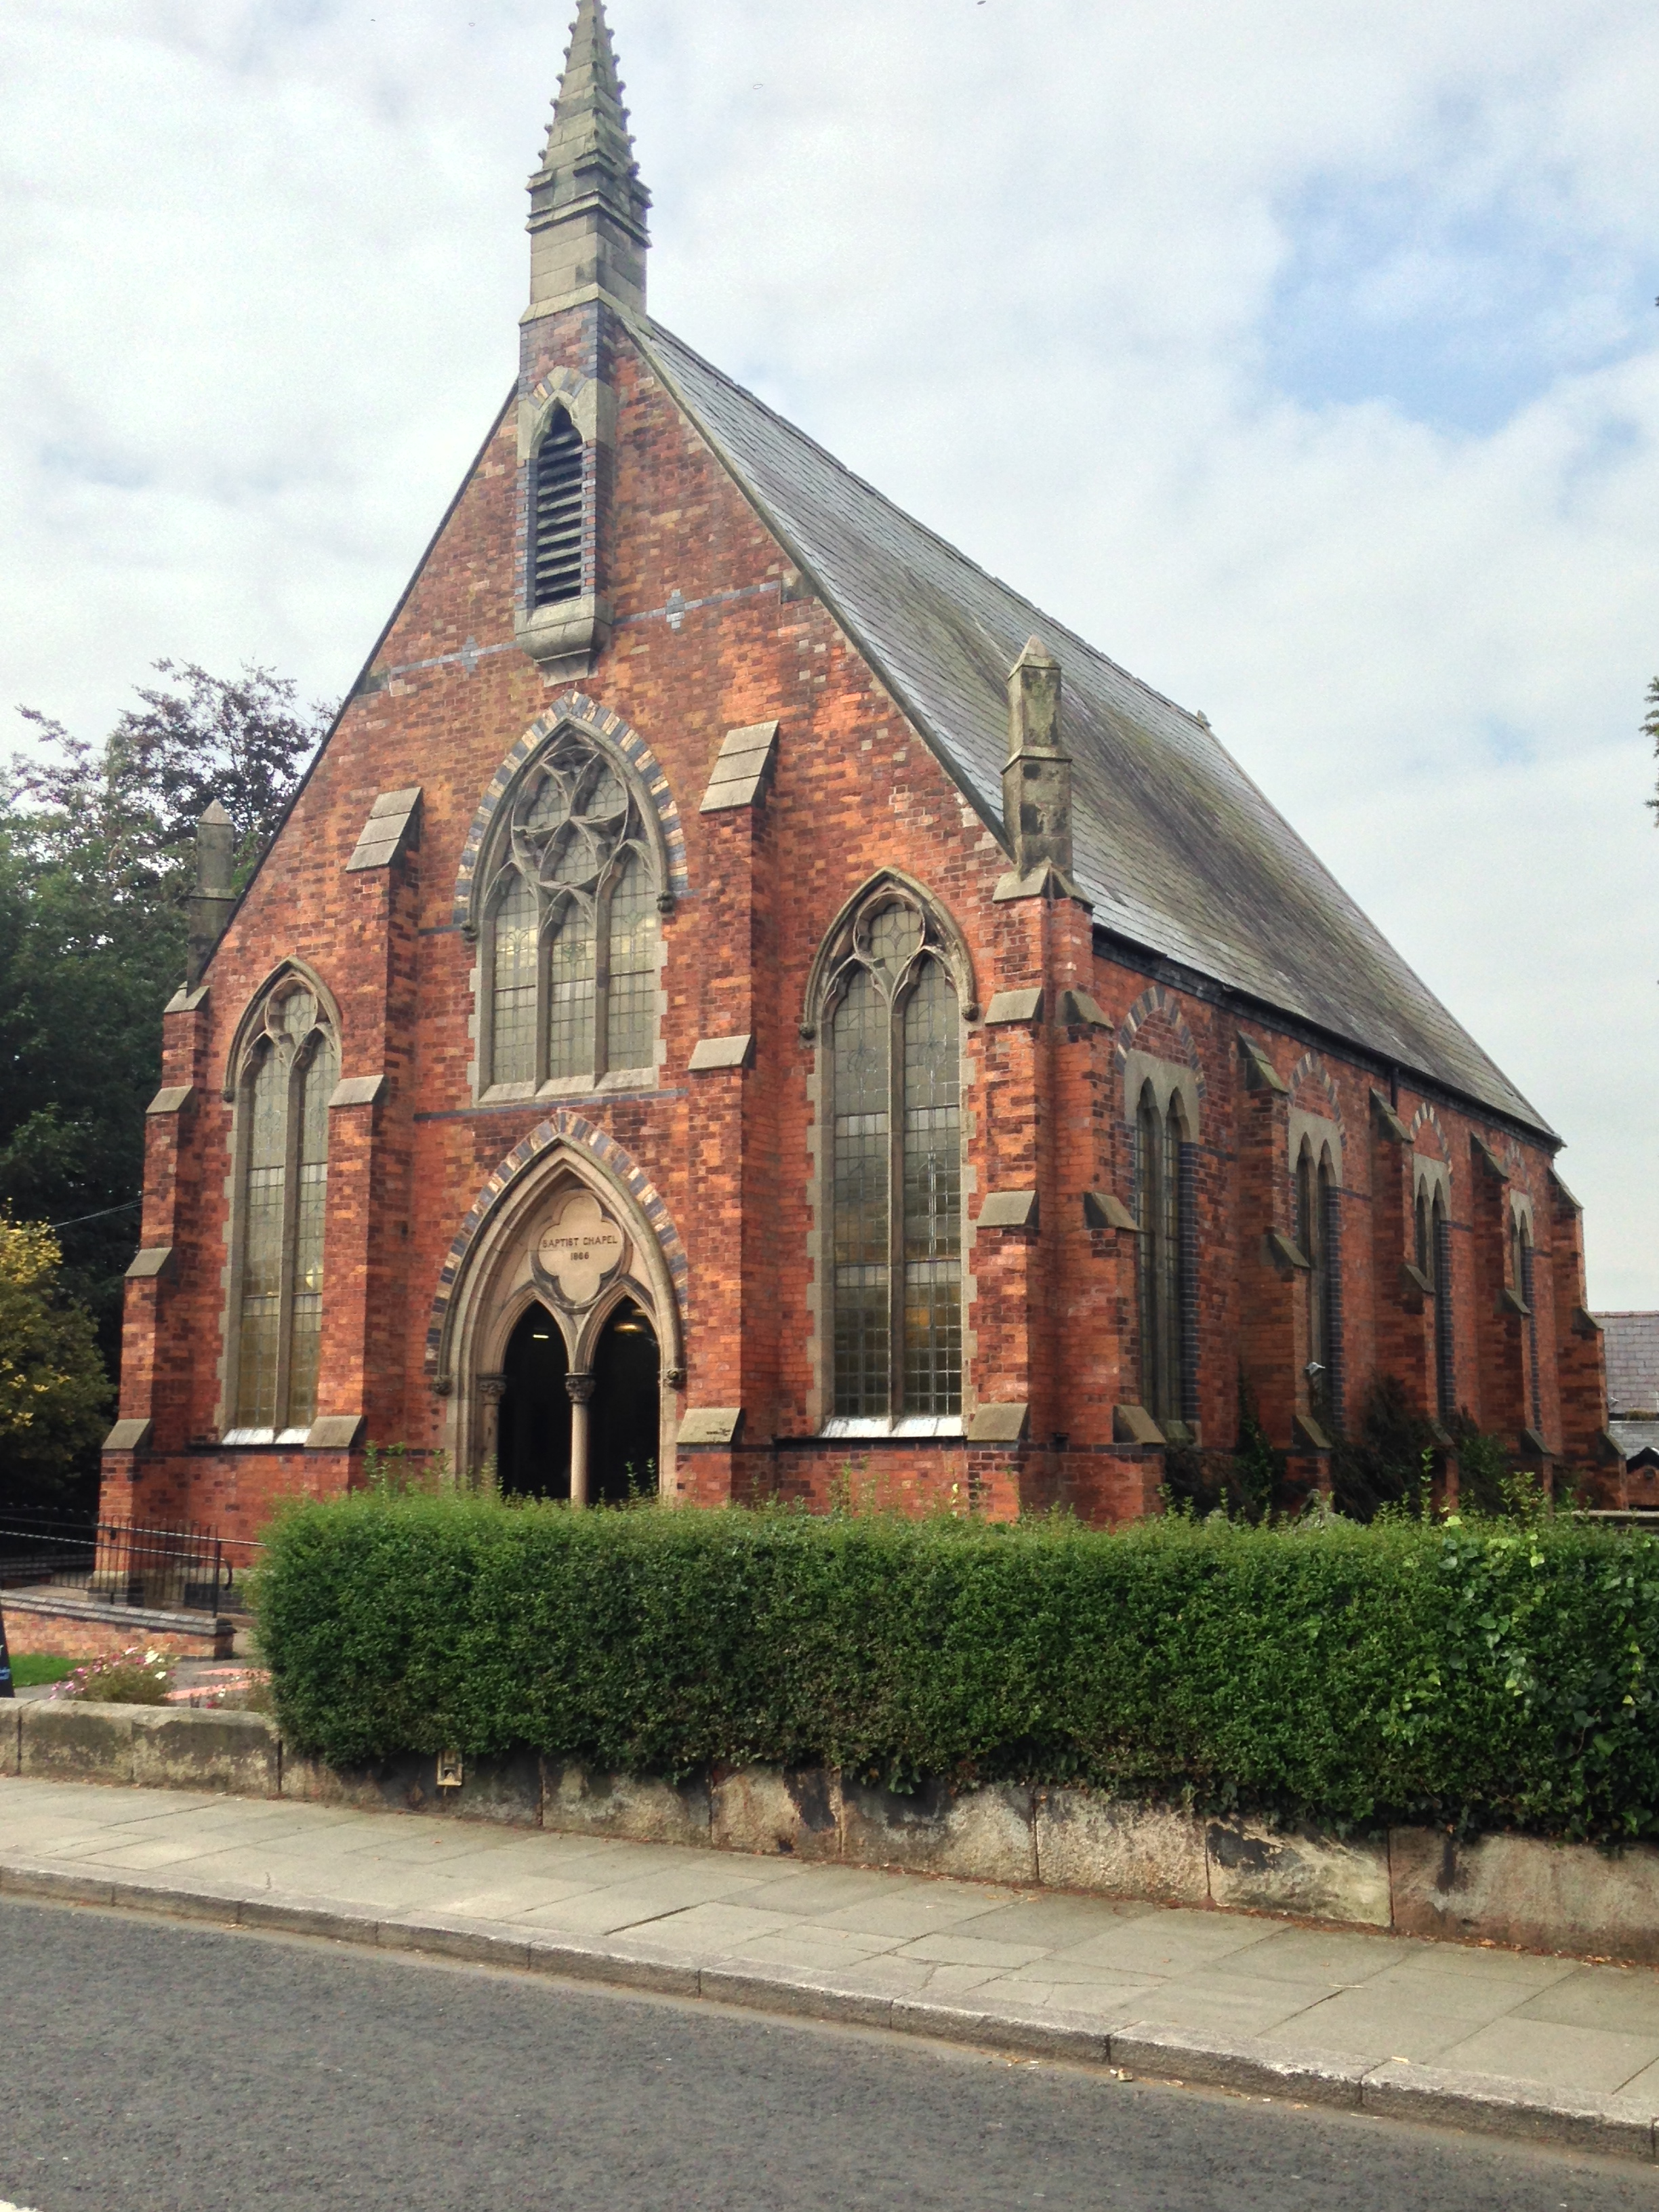 TARPORLEY, Baptist Methodist church, Cheshire